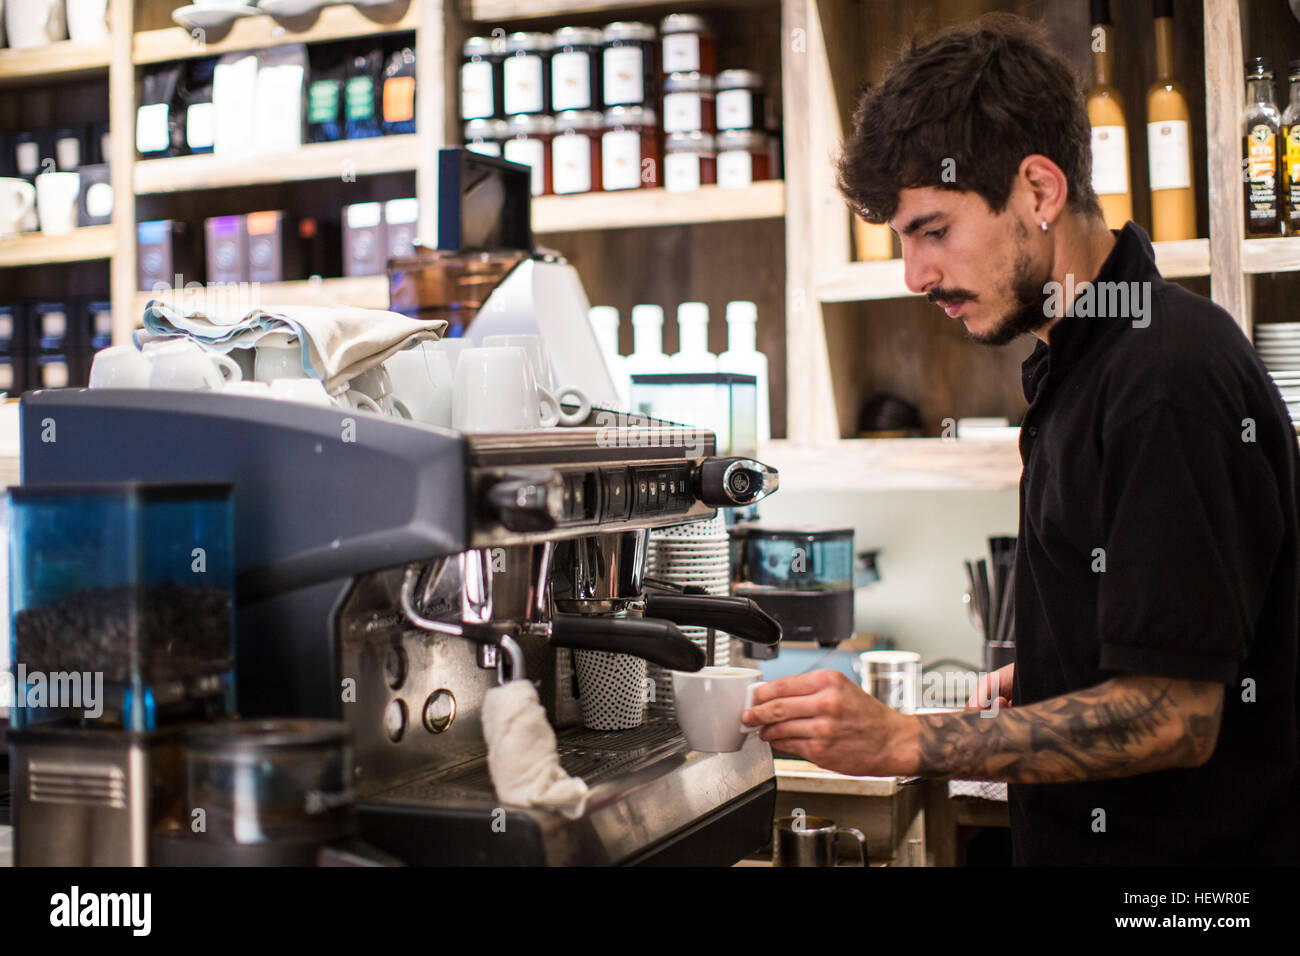 Young male barista using coffee machine in cafe - Stock Image